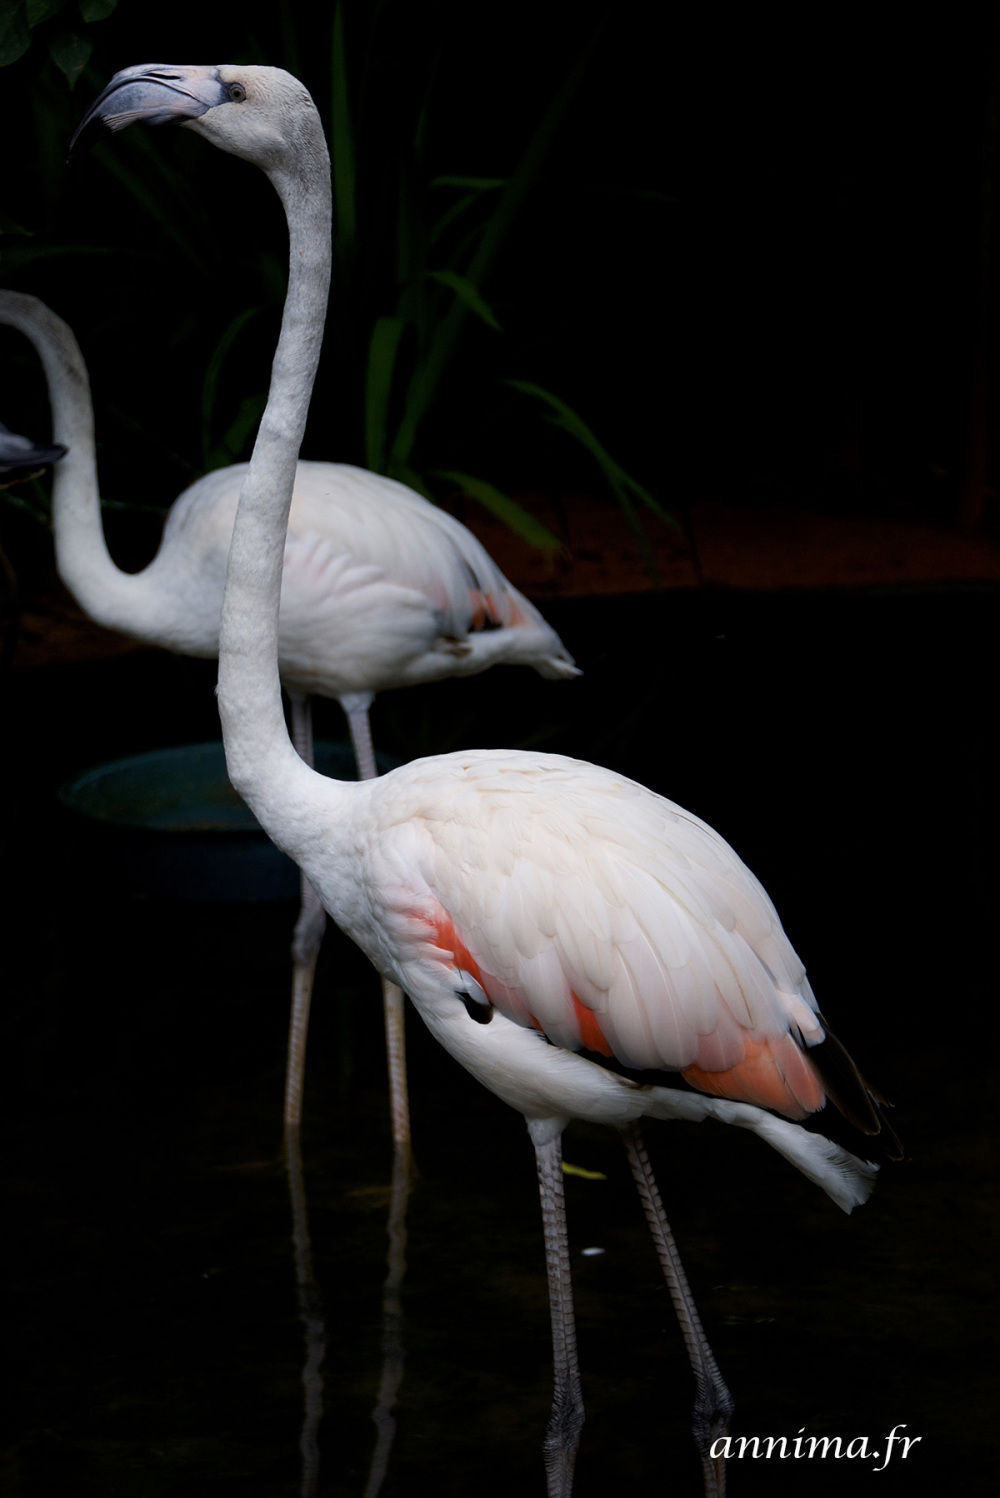 Flamingo, flamant, bird